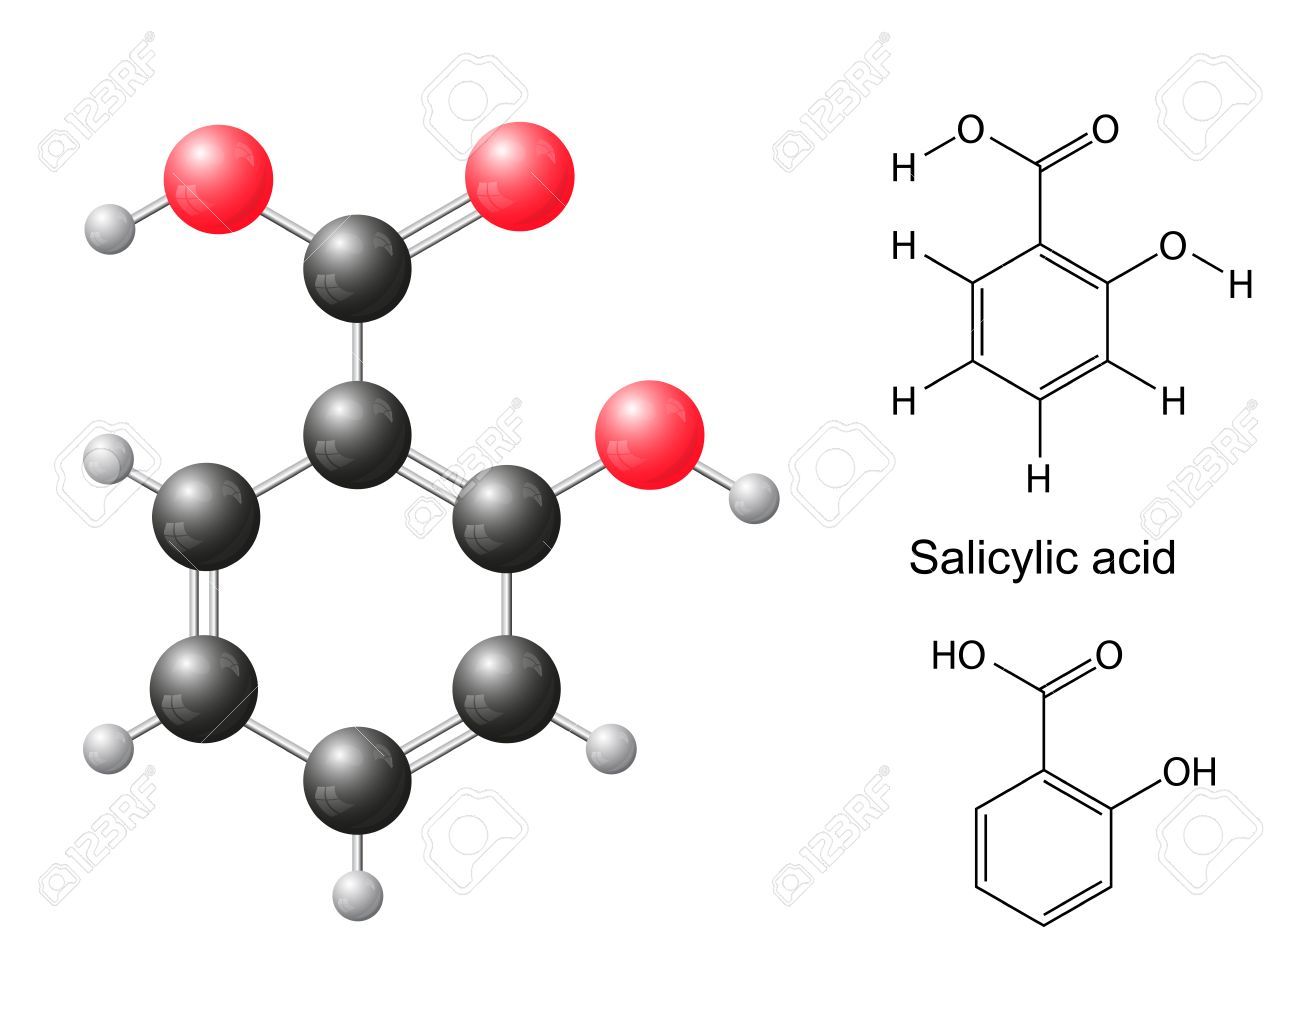 Structural Chemical Formulas And Model Of Salicylic Acid Molecule ...